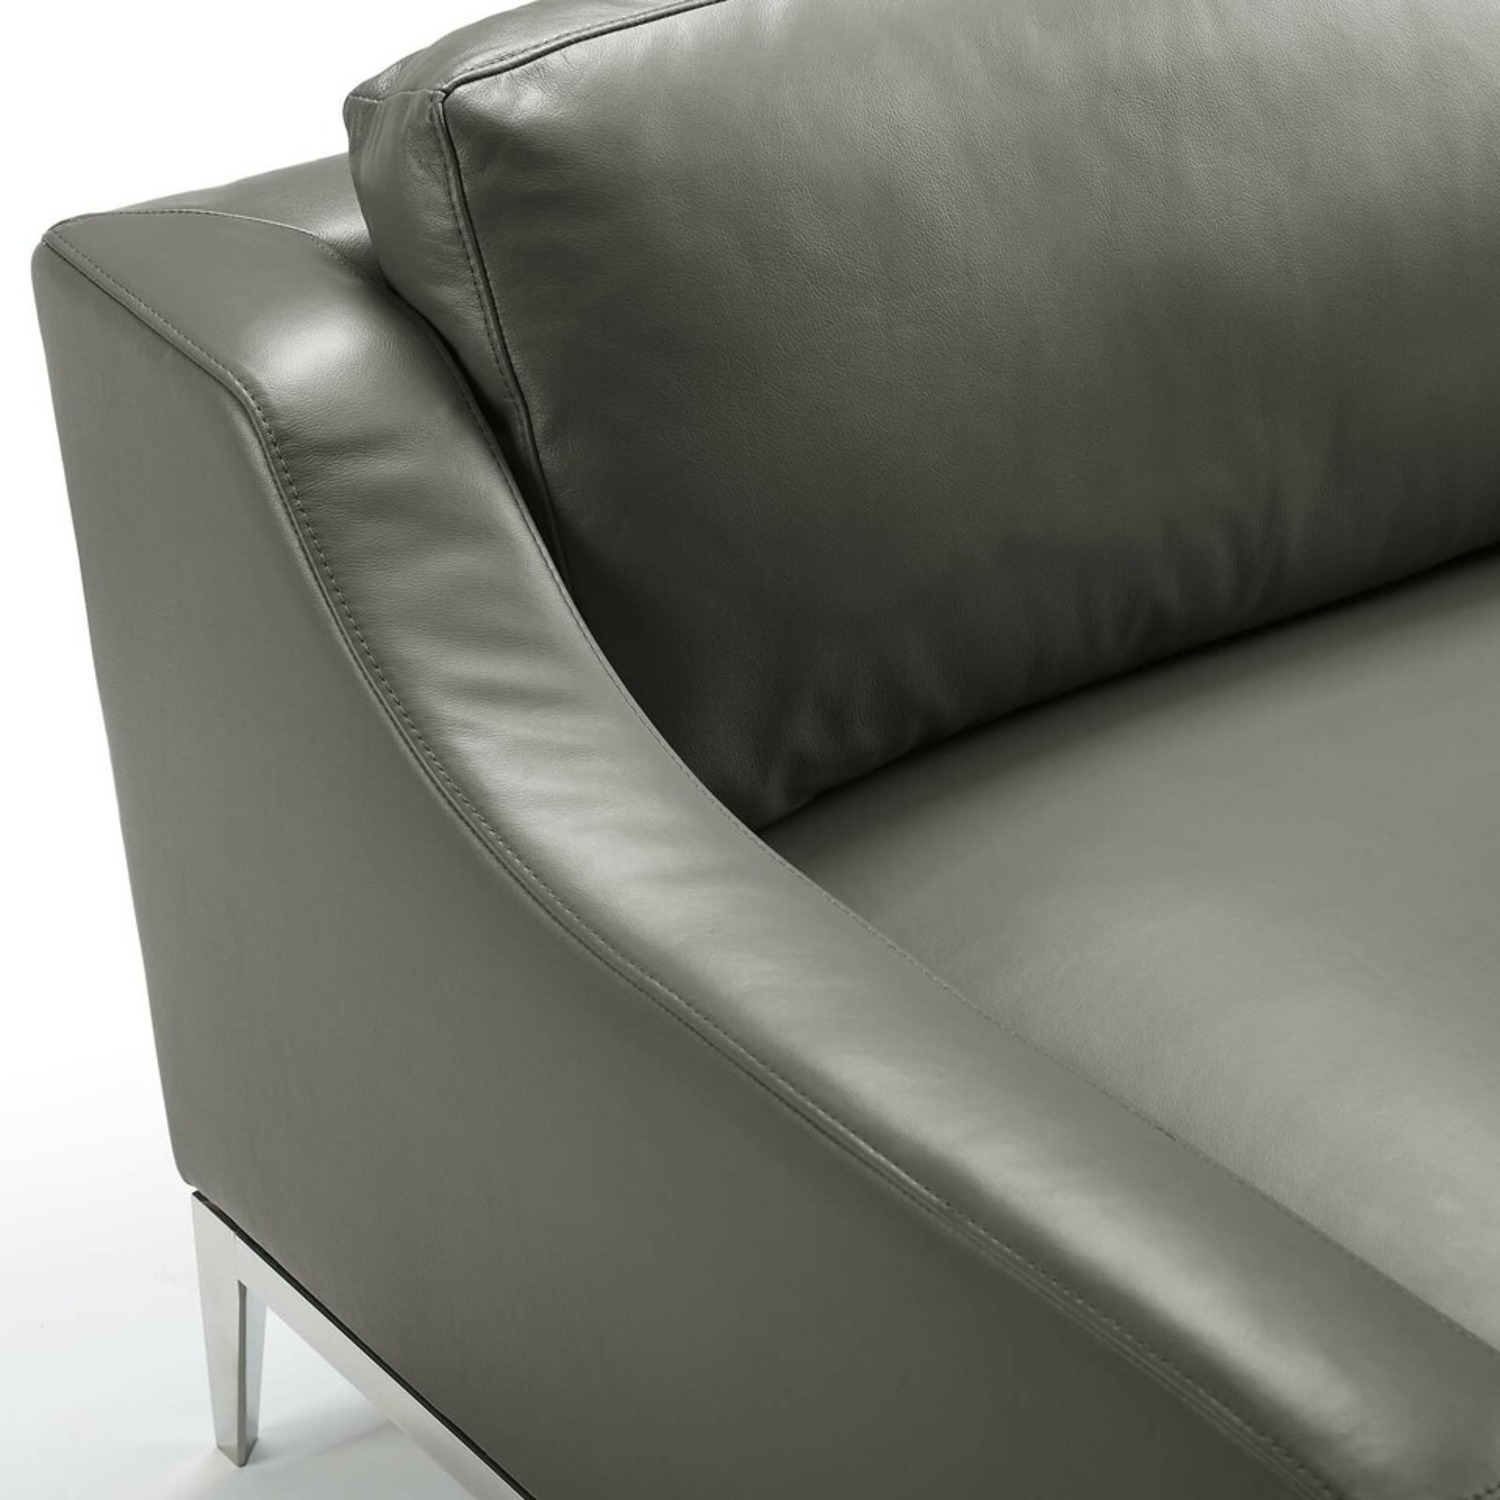 Loveseat In Gray Leather W/ Stainless Steel Base - image-3